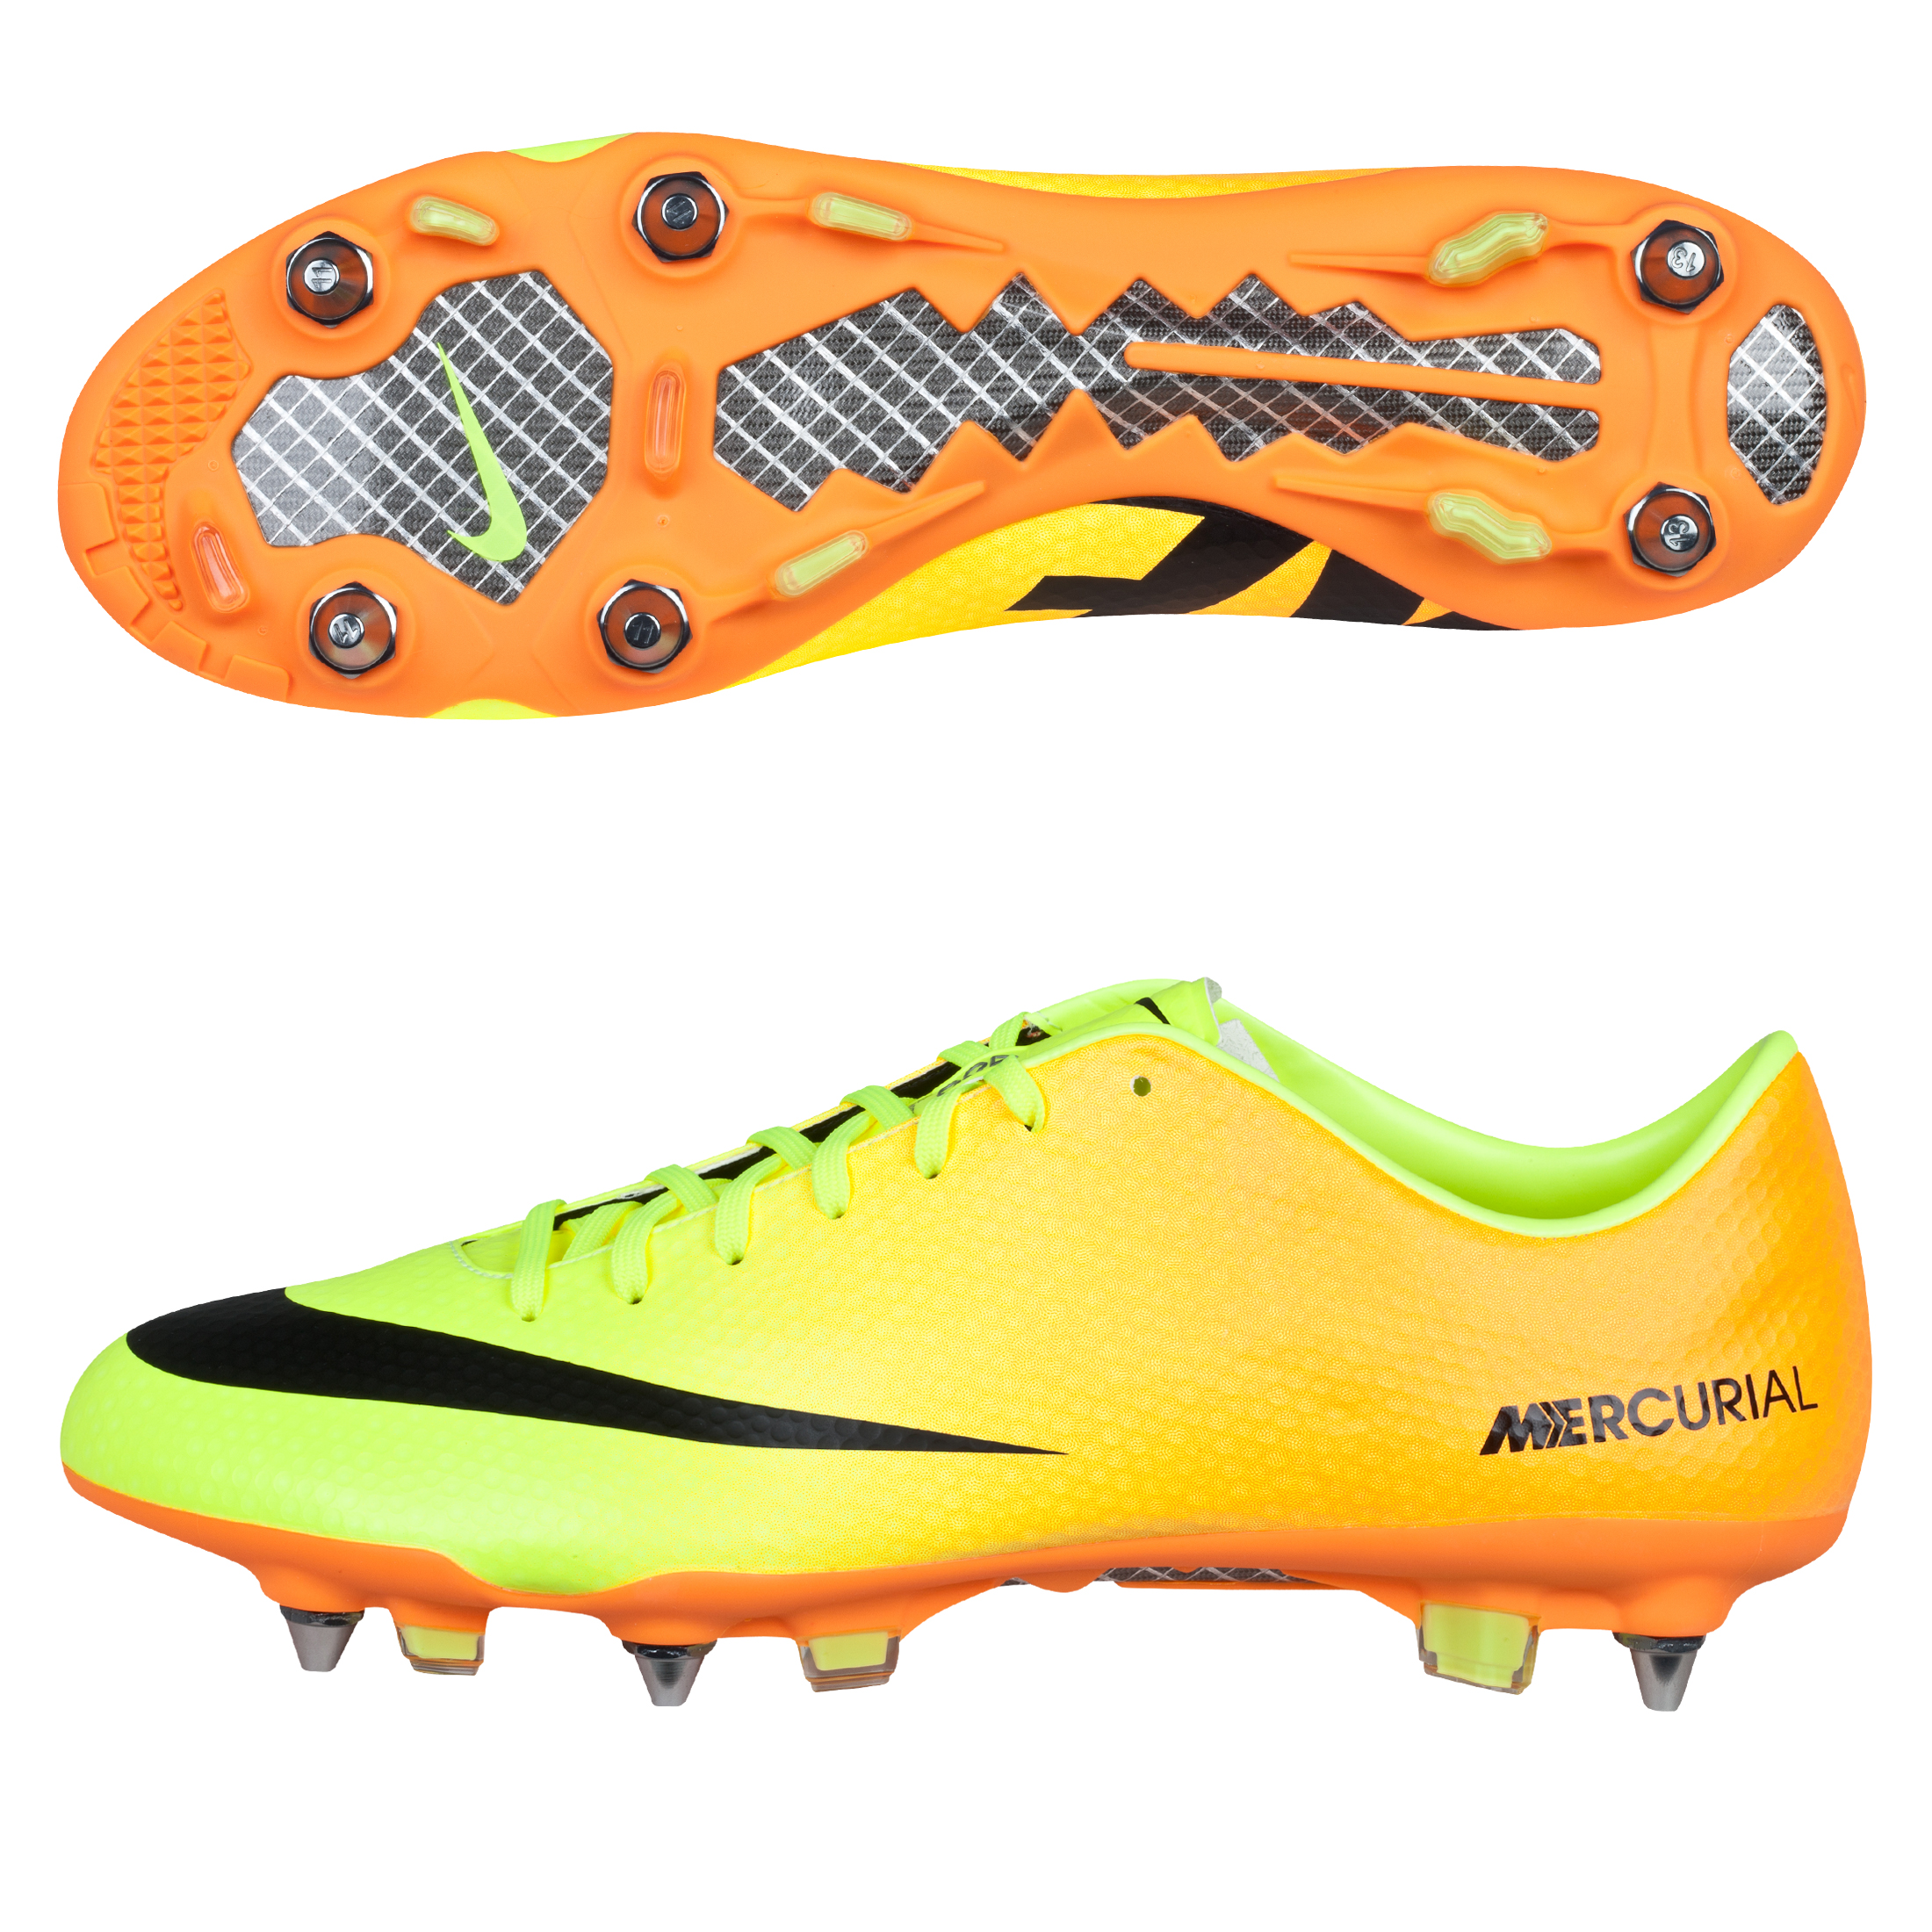 Nike Mercurial Vapor IX Soft Ground Pro Football Boots Yellow